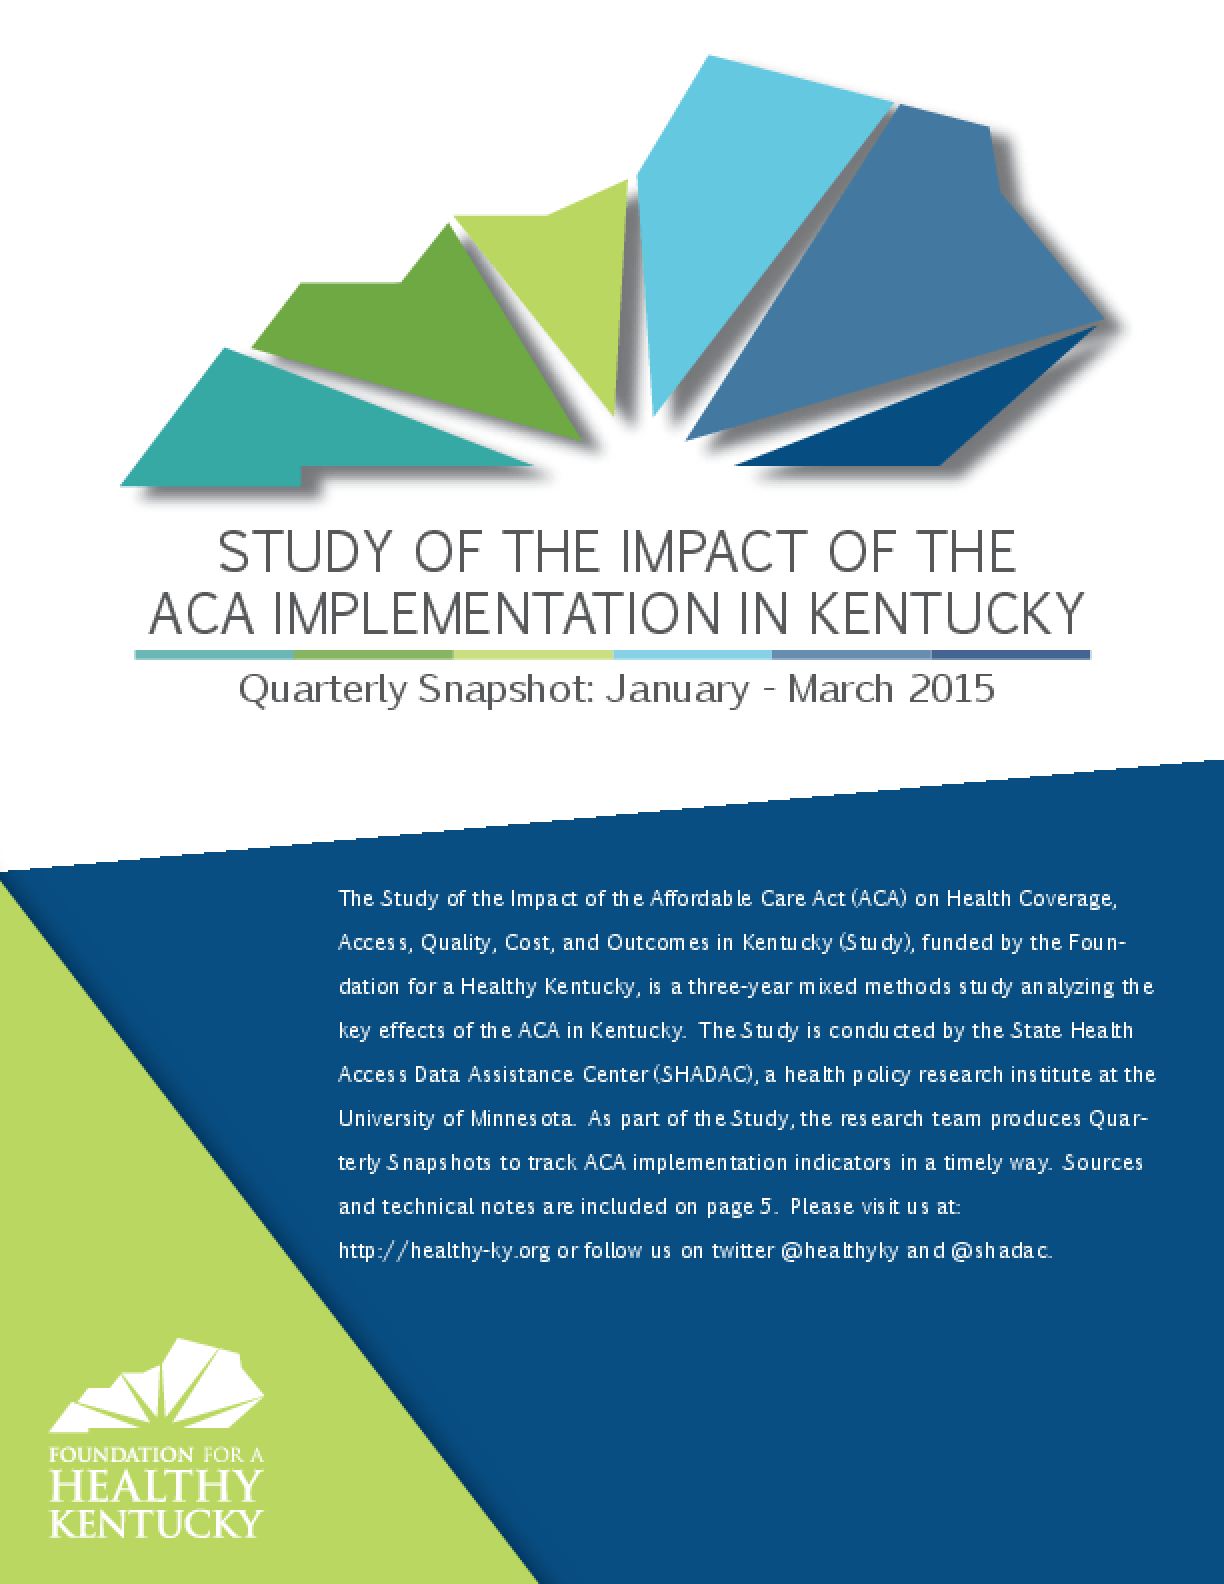 Study of the Impact of the ACA Implementation in Kentucky - Quarterly Snapshot: January - March 2015